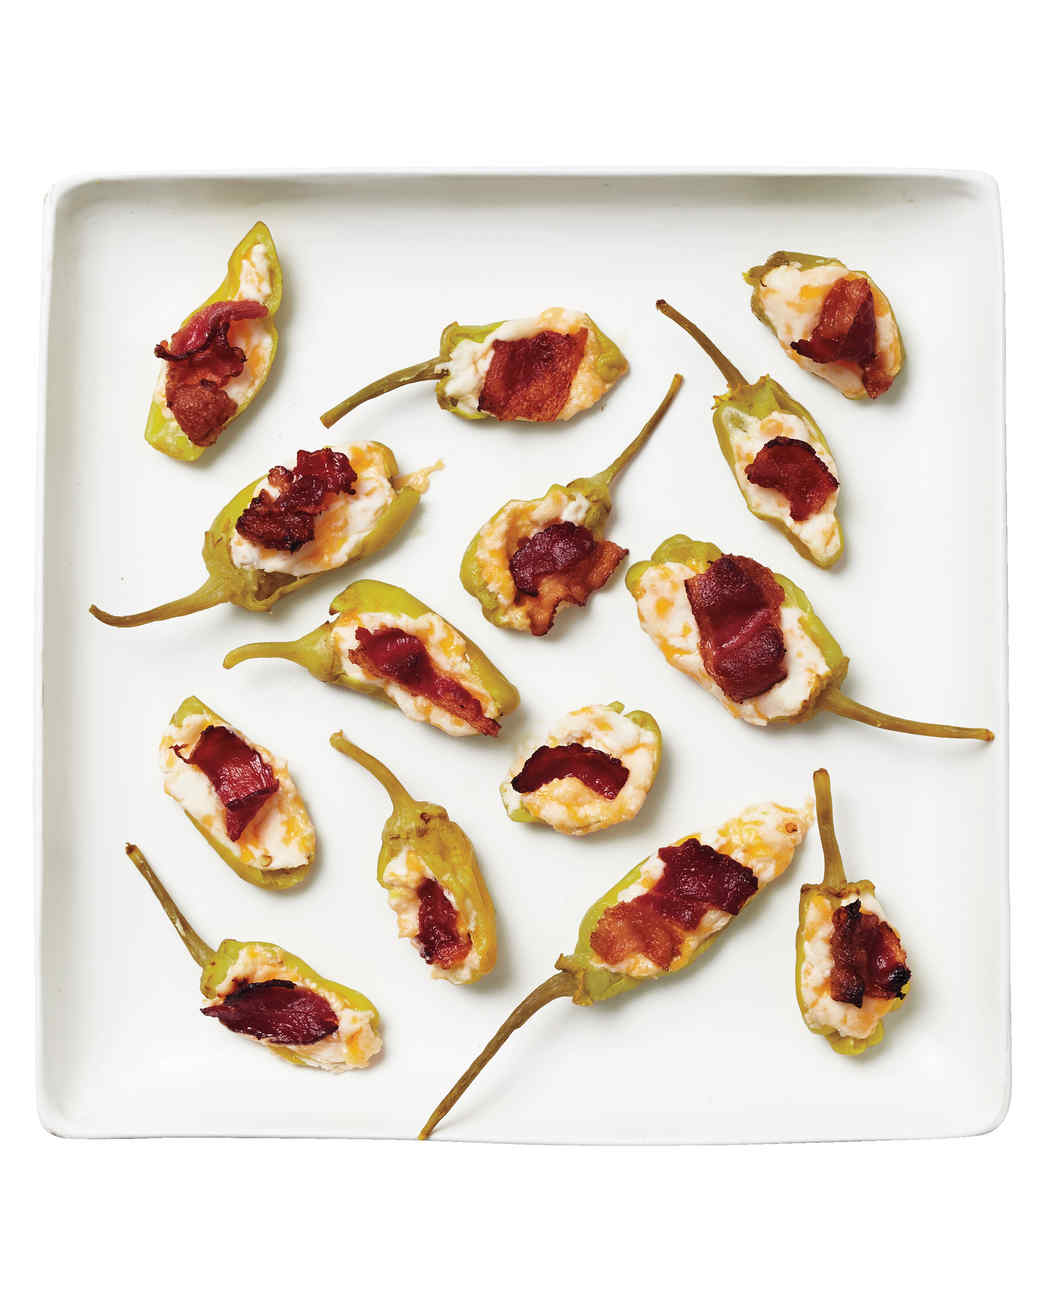 bacon-poppers-021-d111968.jpg